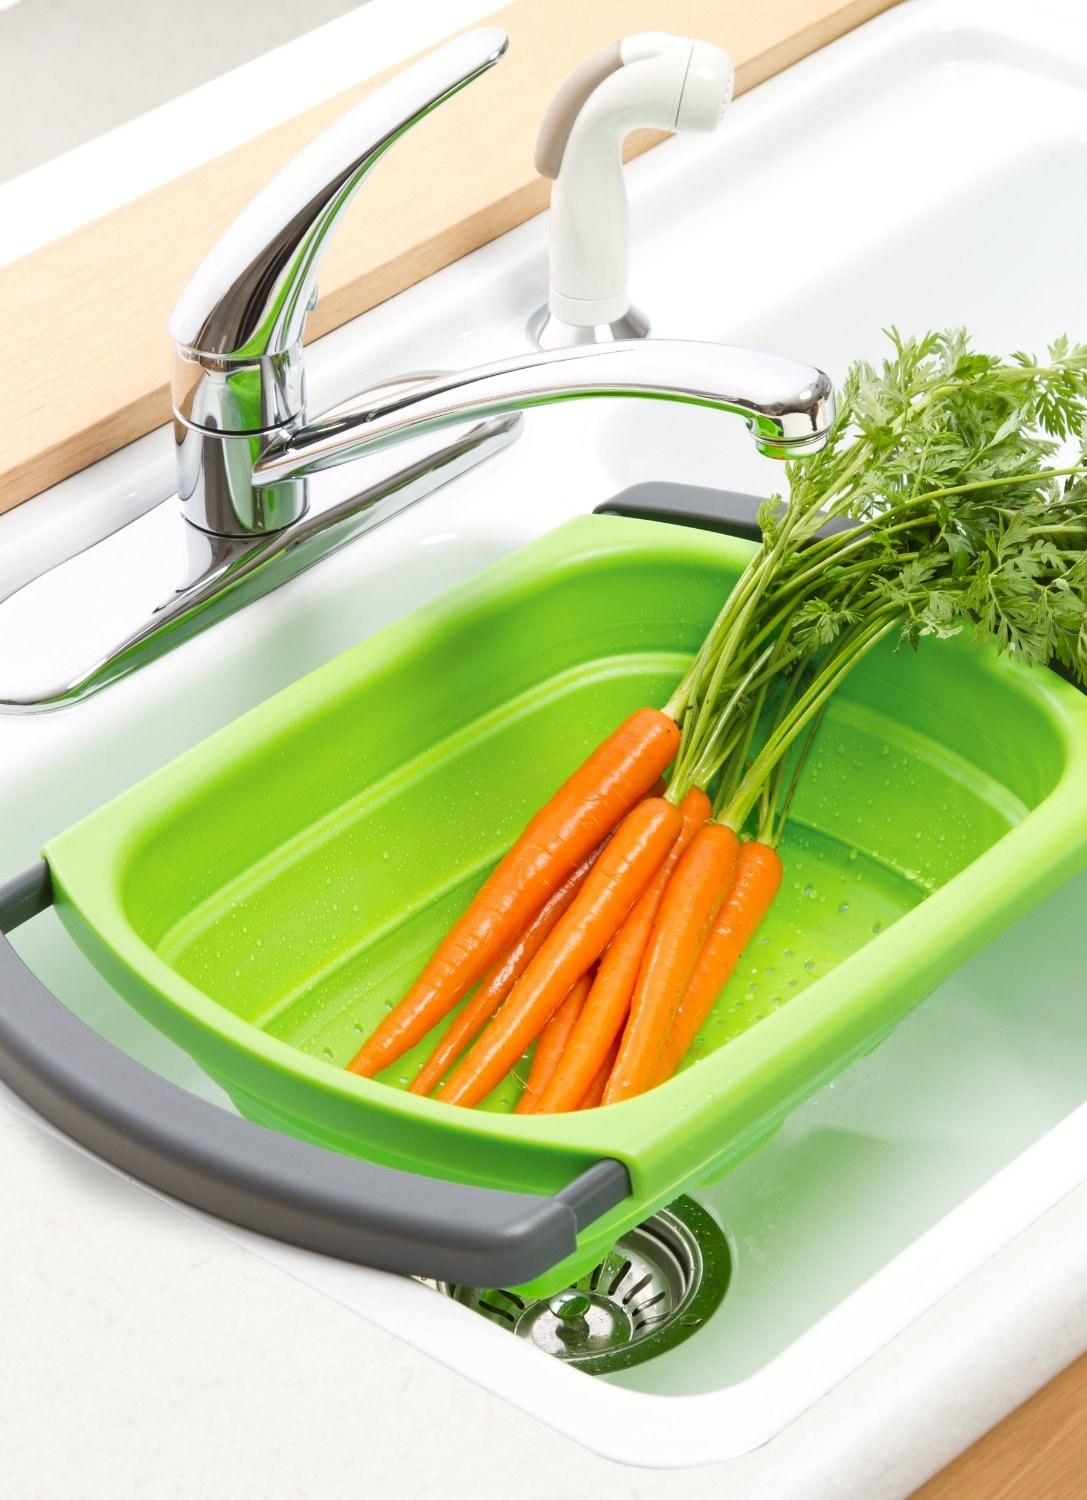 The colander in a sink, with carrots